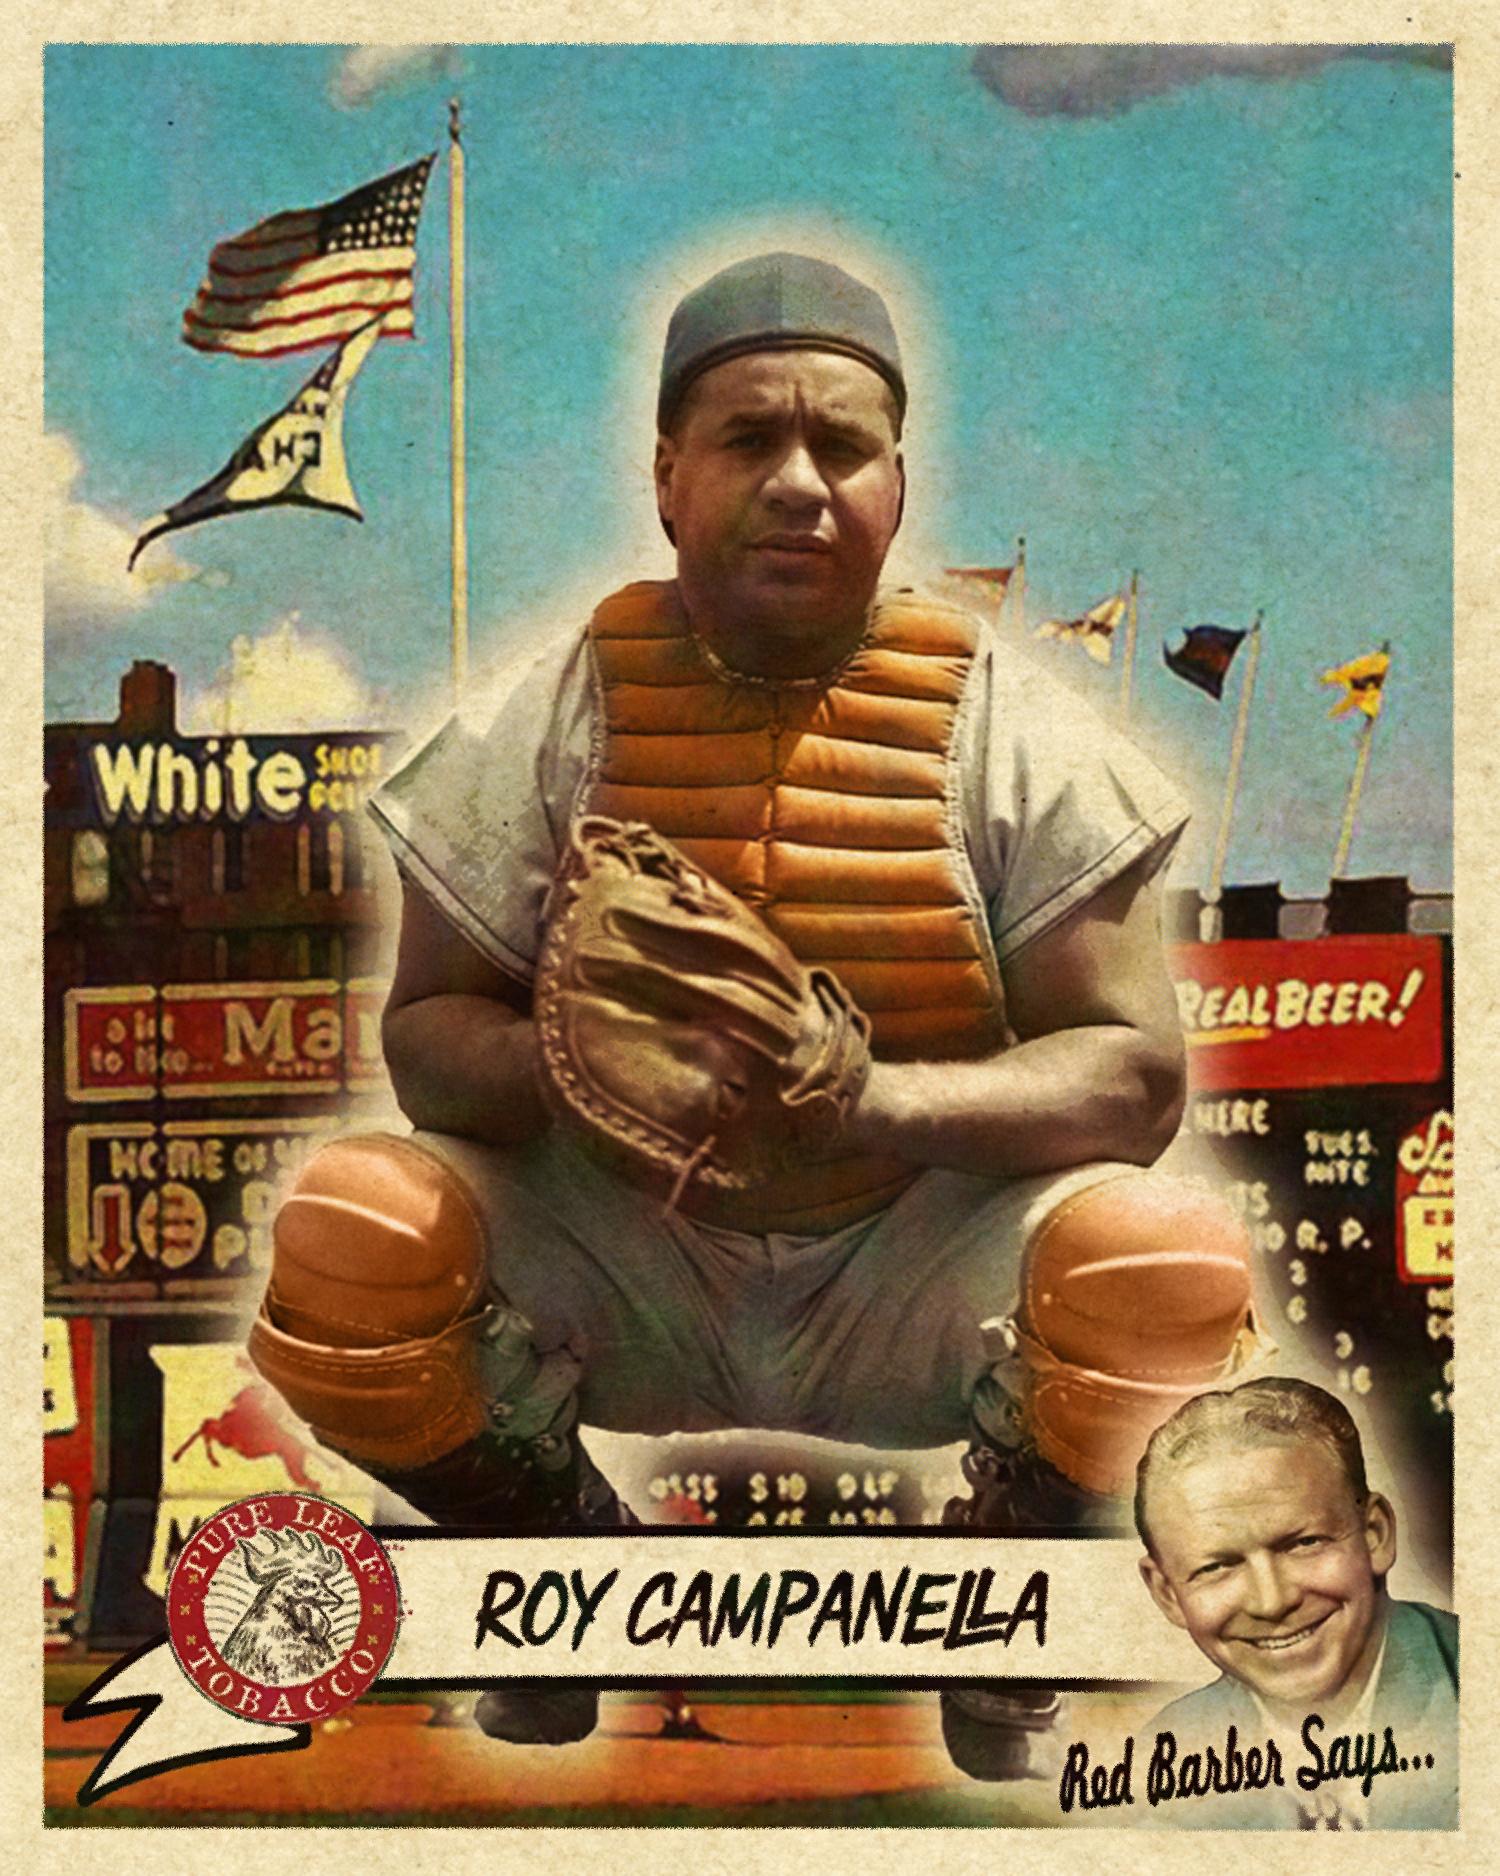 CAPITAL OF BASEBALL SERIES - One of Banty Red's first offerings, the Capital Of Baseball set contains 34 cards featuring the best of New York's 3 boroughs between 1950-1956. This beautiful Roy Campanella card, complete with Ebbetts Field's view of Bedford Avenue in Brooklyn is one of the sets' most popular singles.SOLD FOR 368.50 USD, Summer 2016